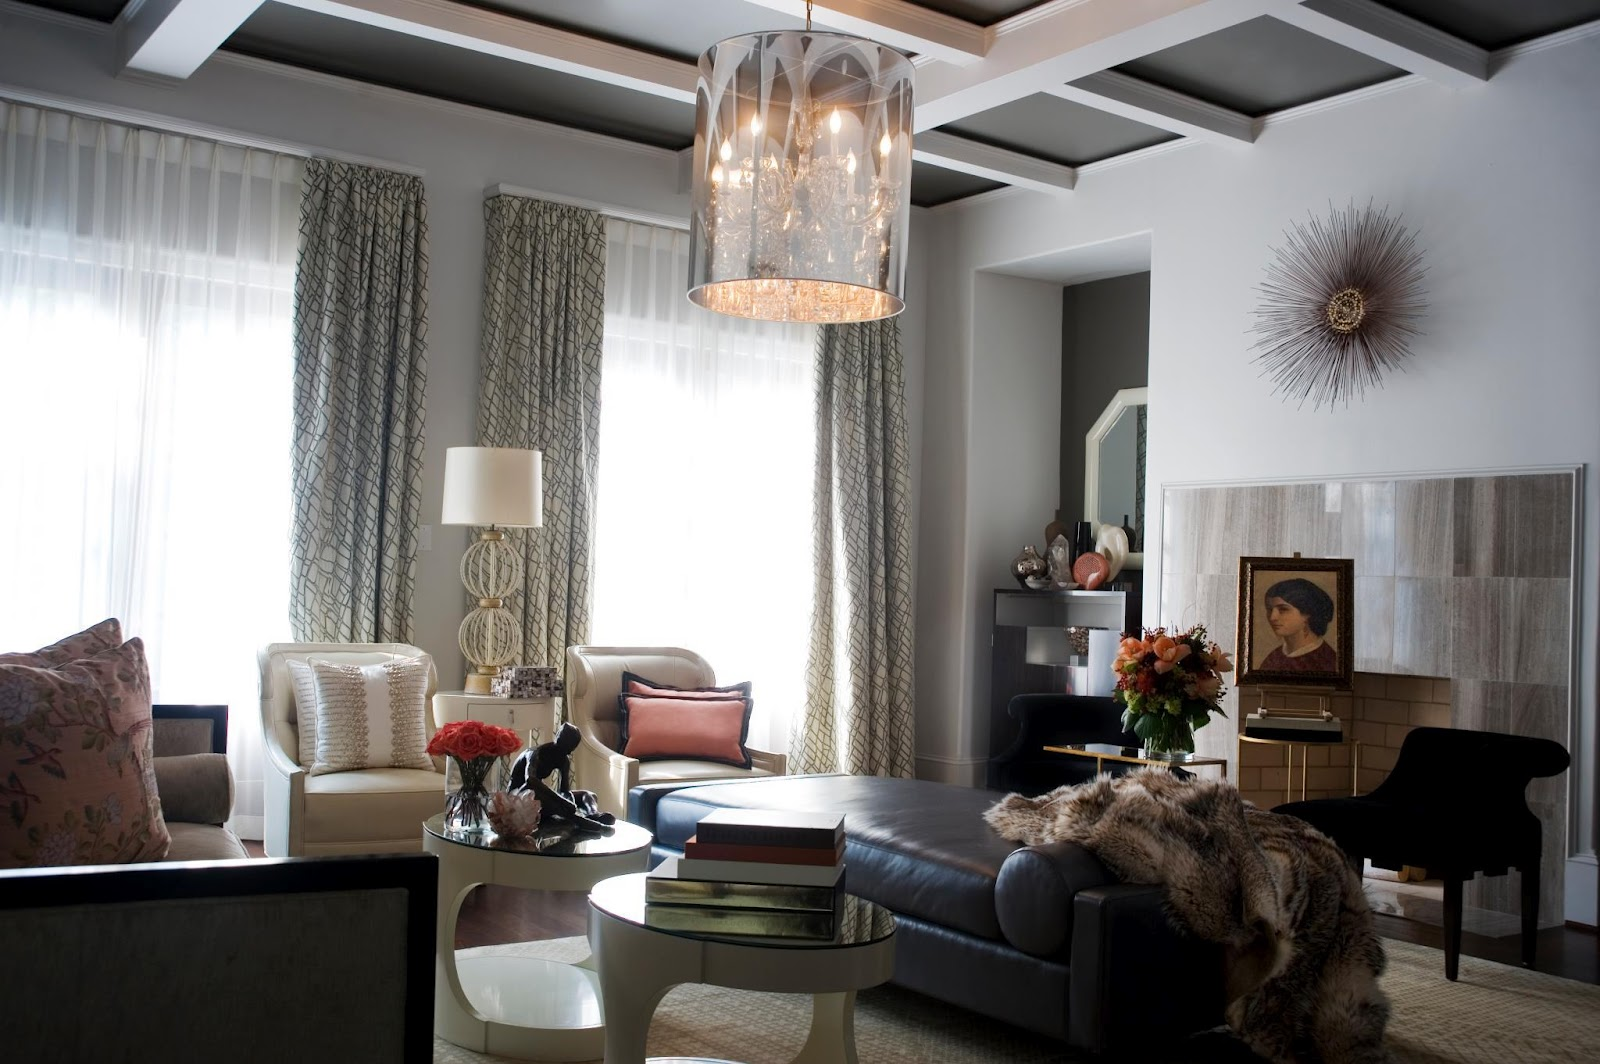 Relaxing Lamp Designers In Living Room Decoration (View 9 of 10)